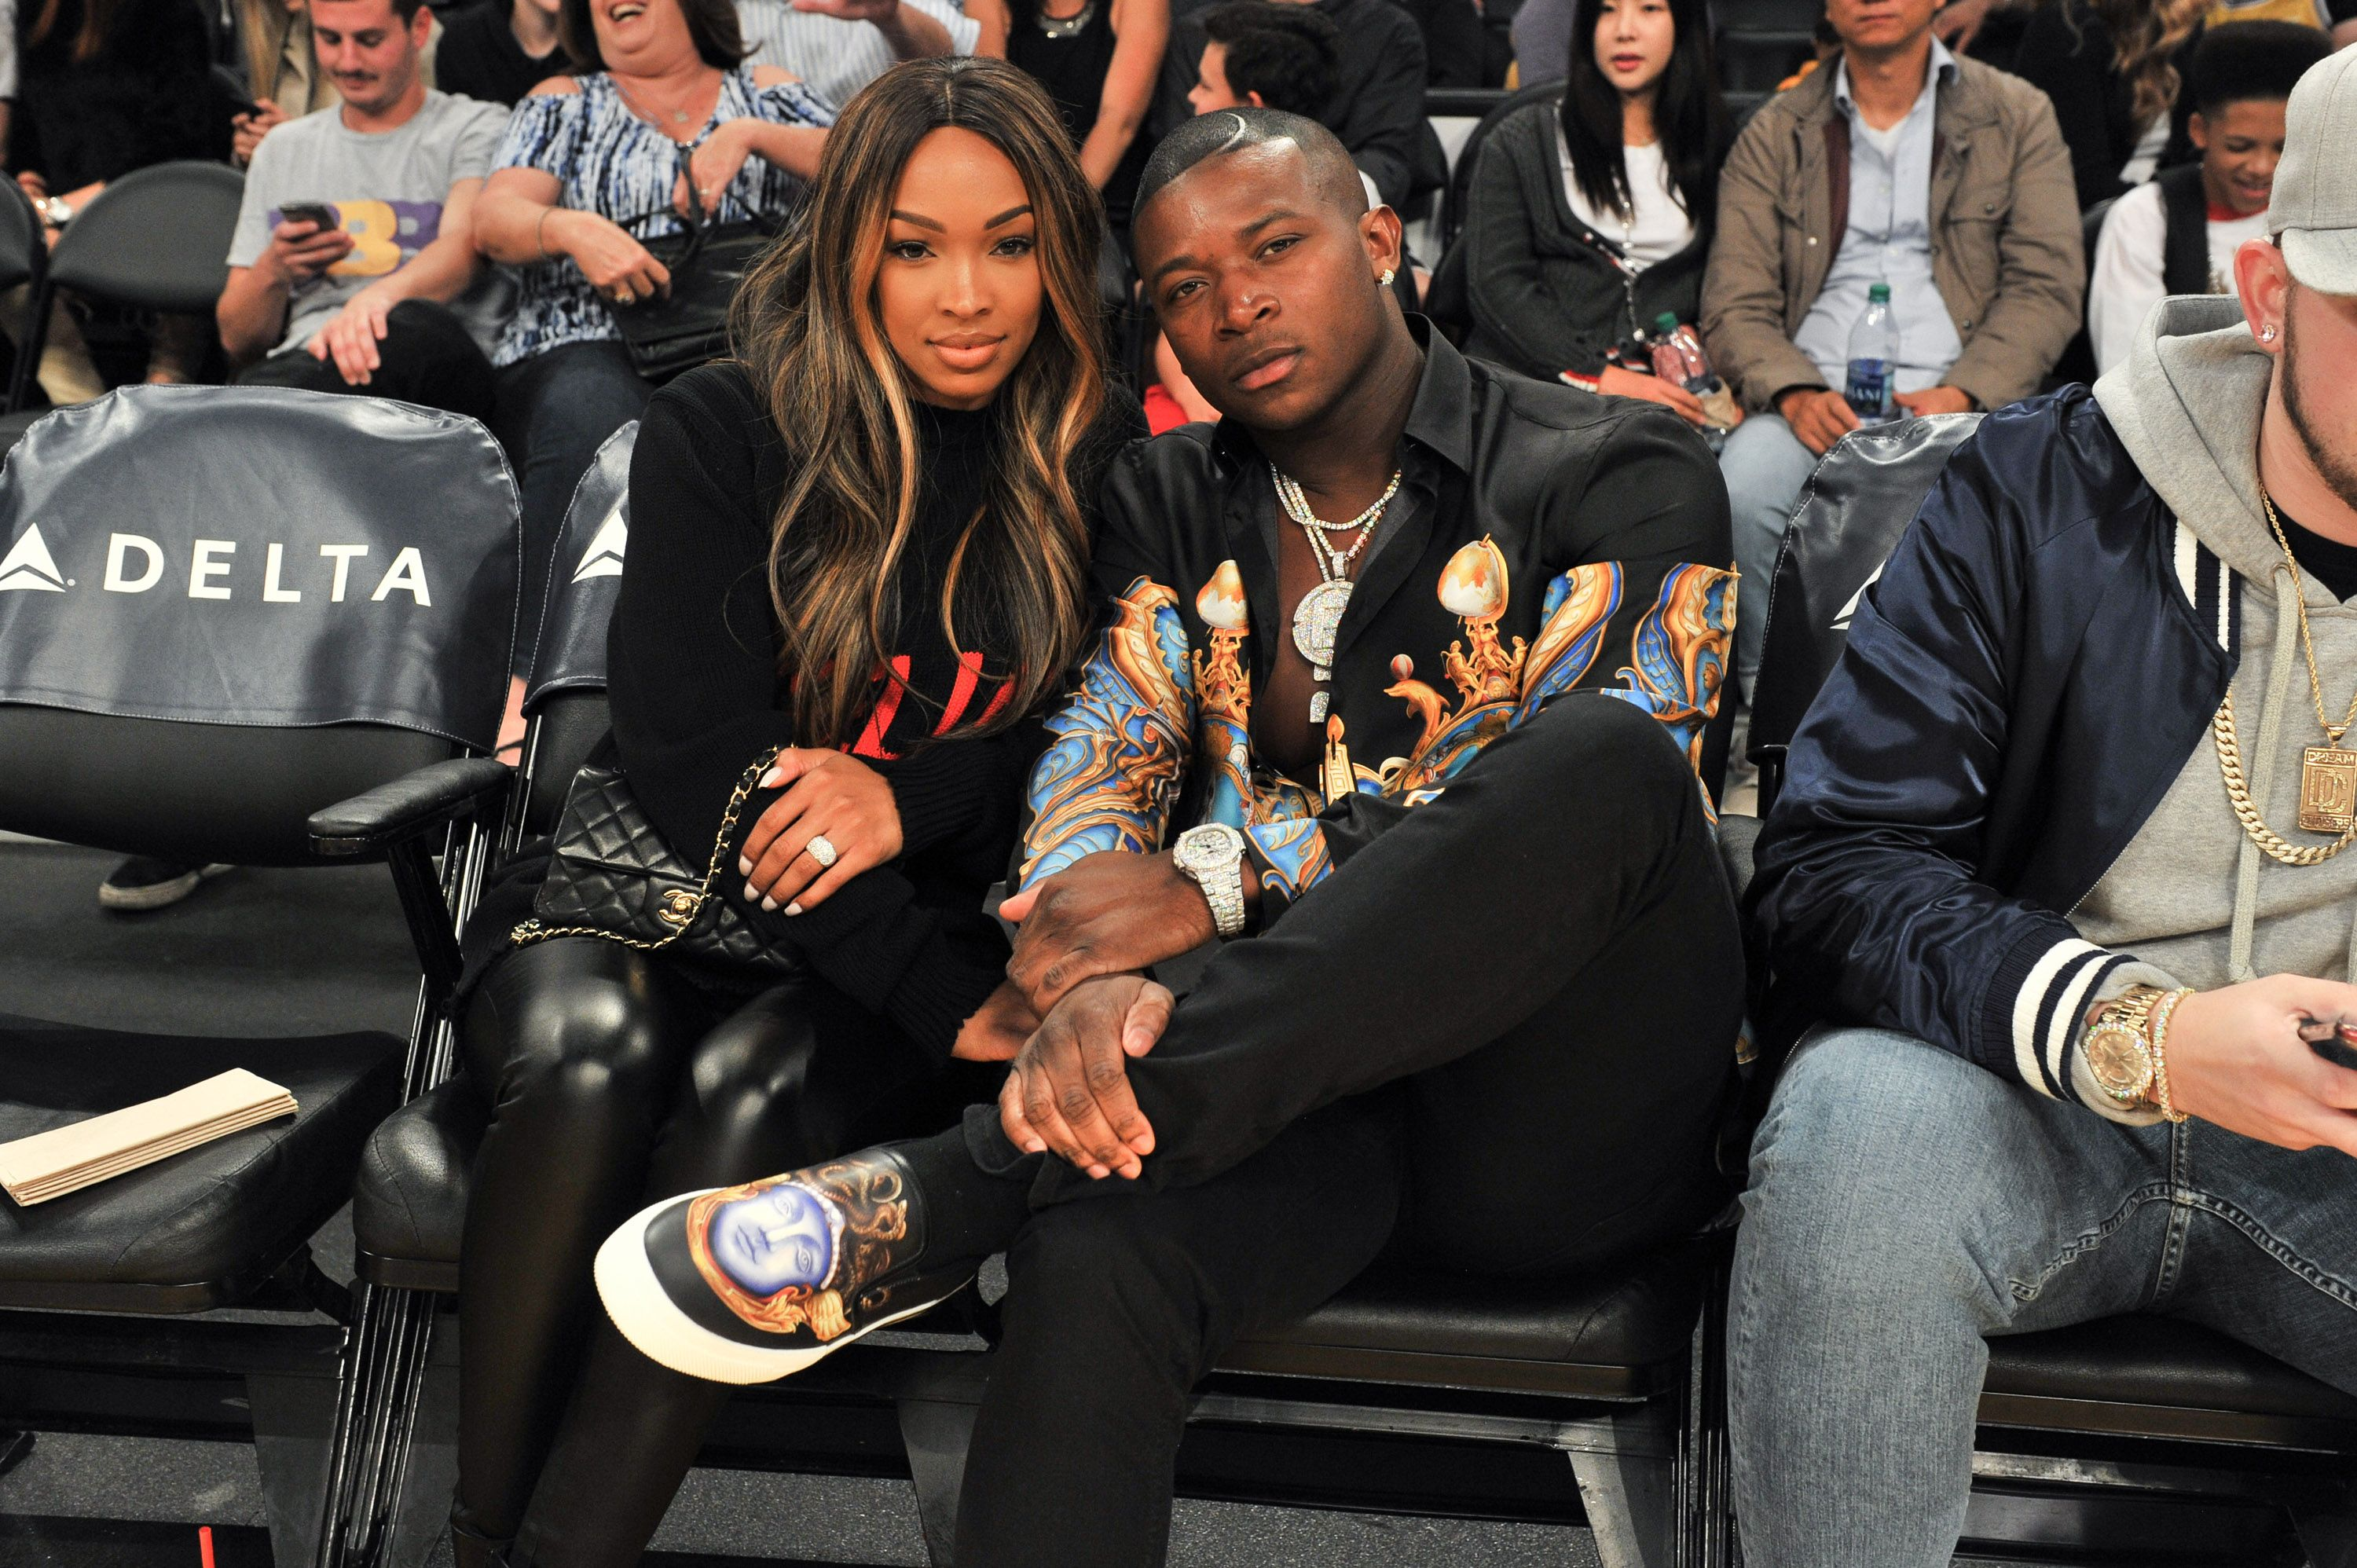 Malika Haqq and O.T. Genasis during a basketball game on November 21, 2017 in California. | Source: Getty Images